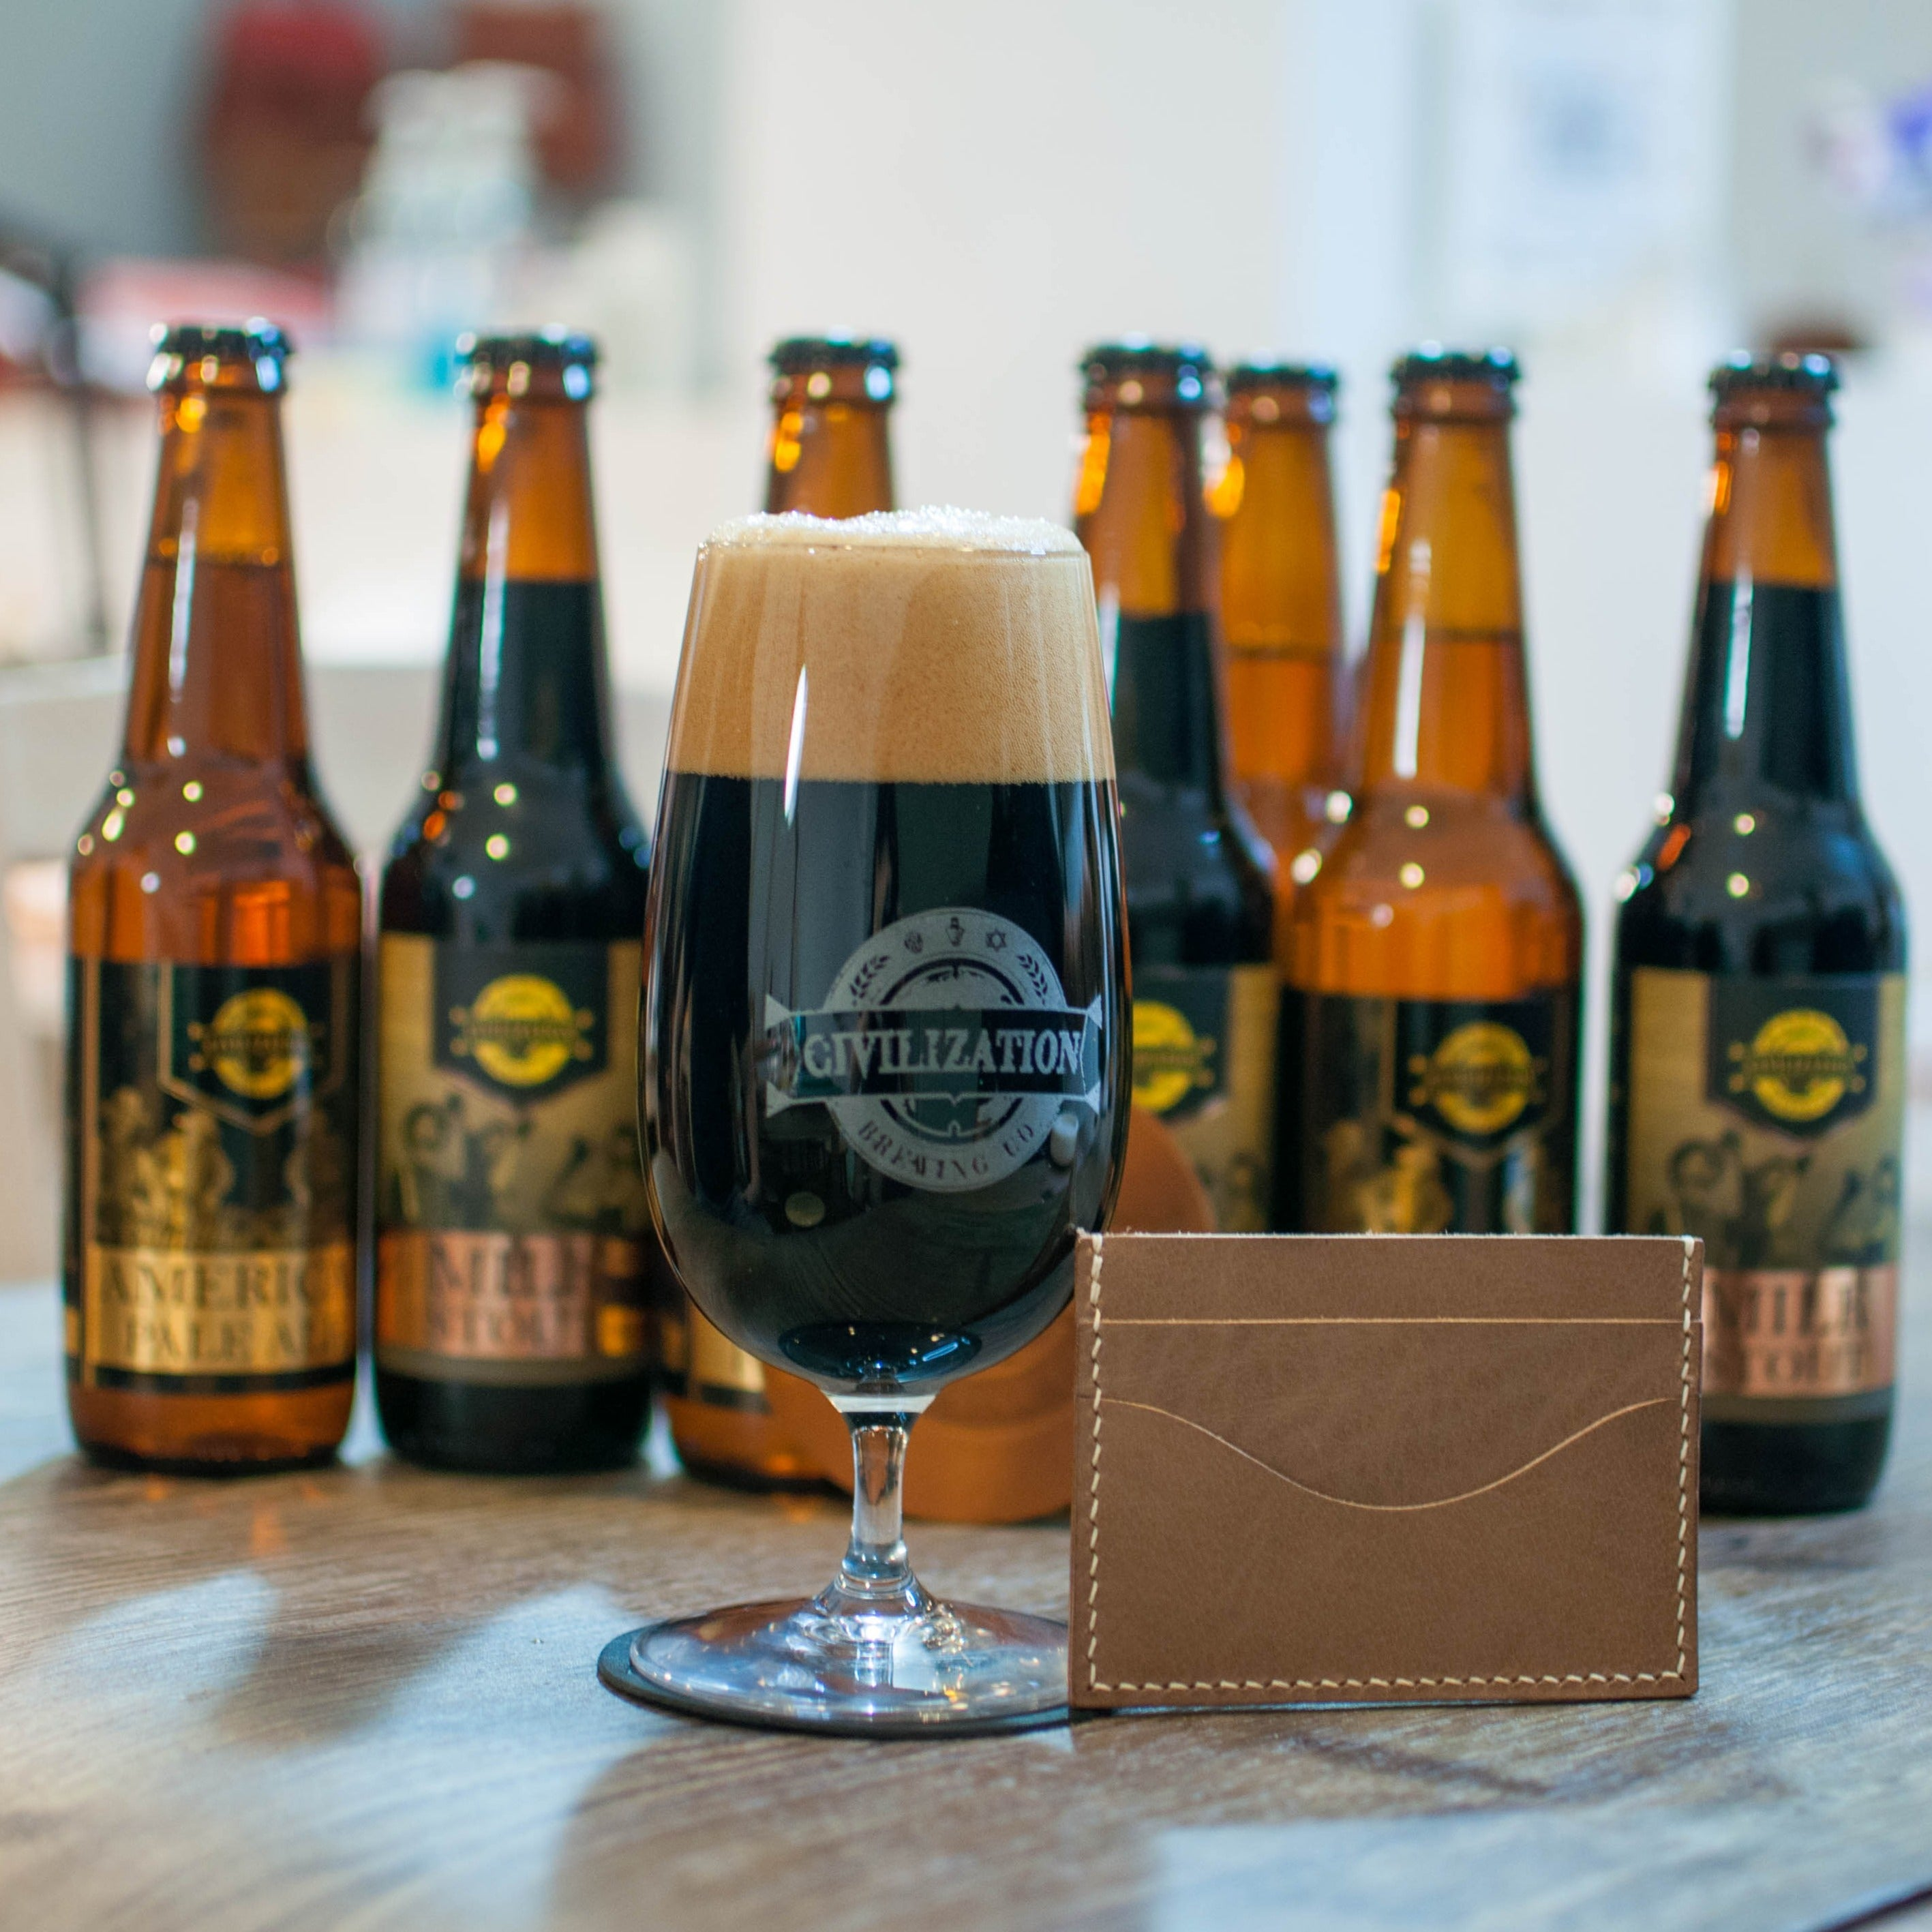 Beer Brewing and Leather Crafting Workshop - 26th Sept 2020, 3pm to 7pm.